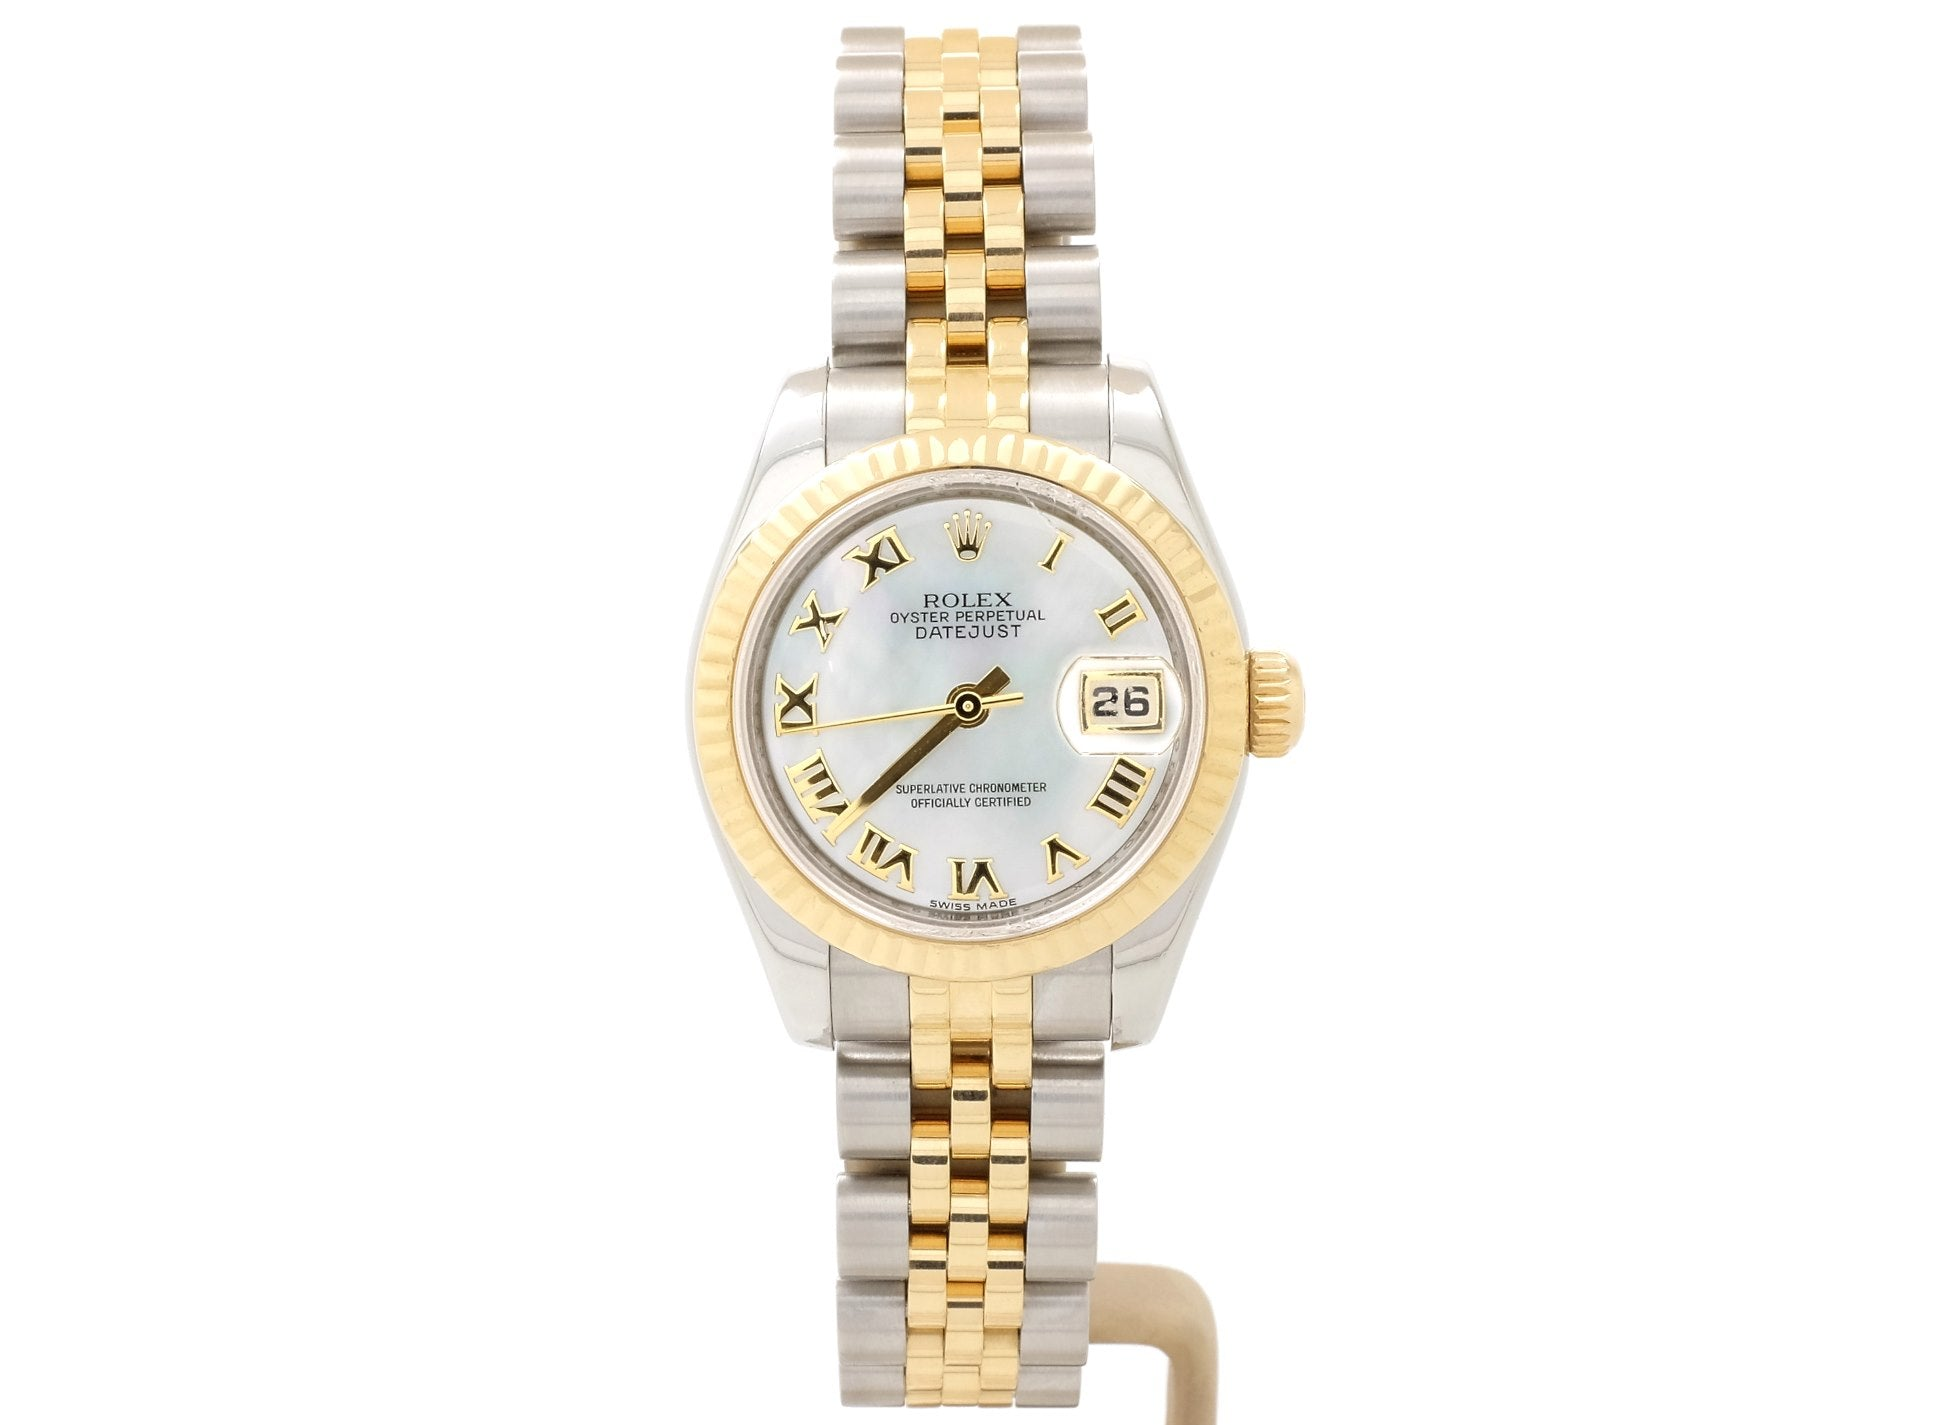 26mm Rolex LADY-DATEJUST Model 179173 in 18ct-Gold & Steel with MOP Dial